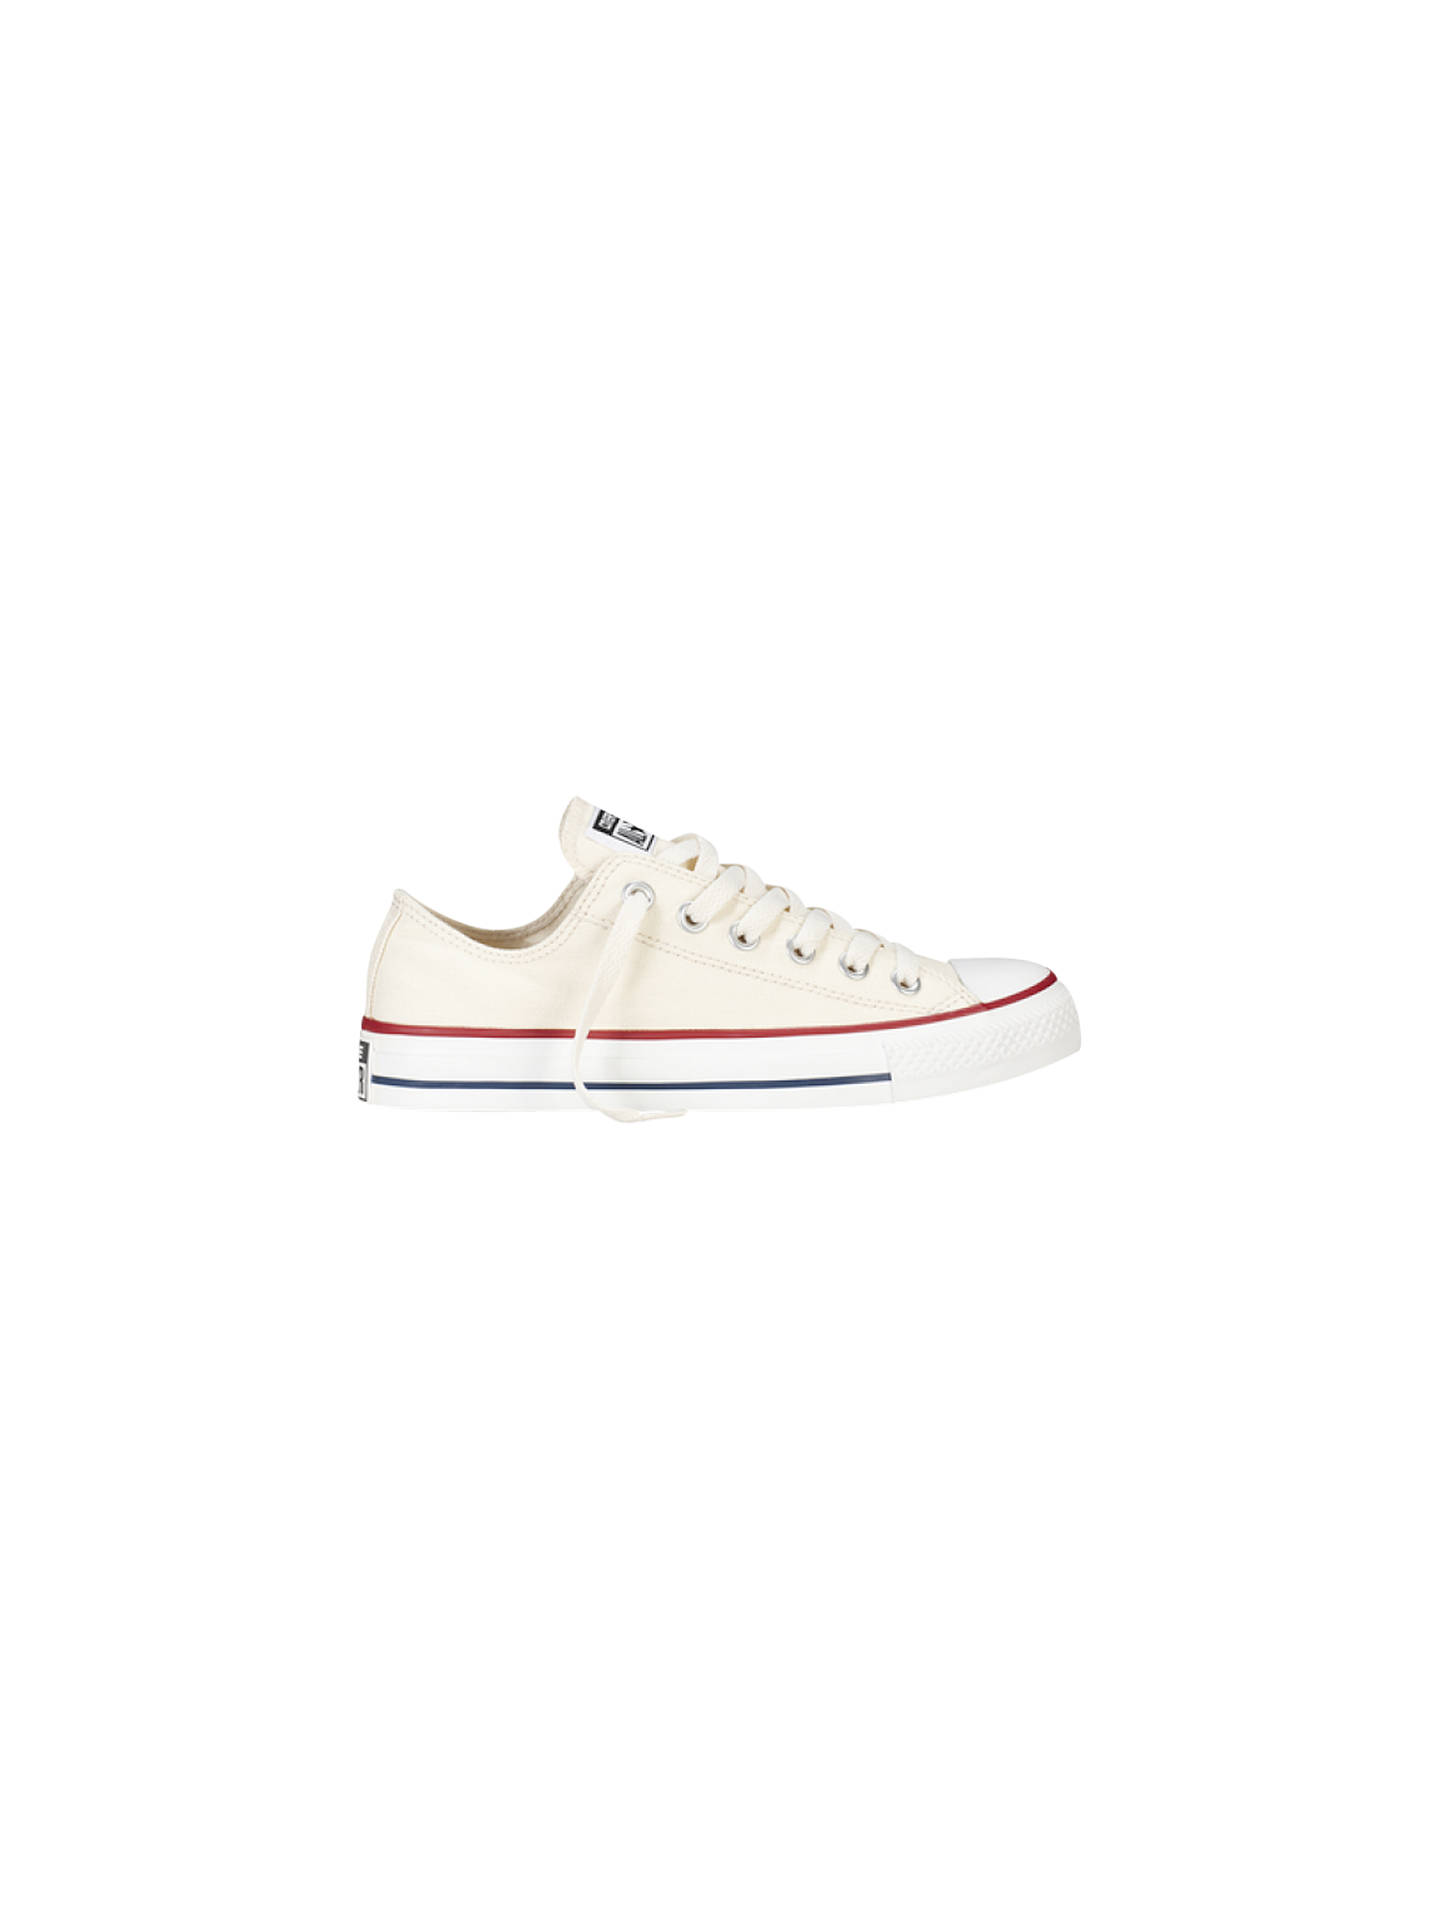 aacbb61b9833 Buy Converse Chuck Taylor All Star Canvas Ox Low-Top Trainers